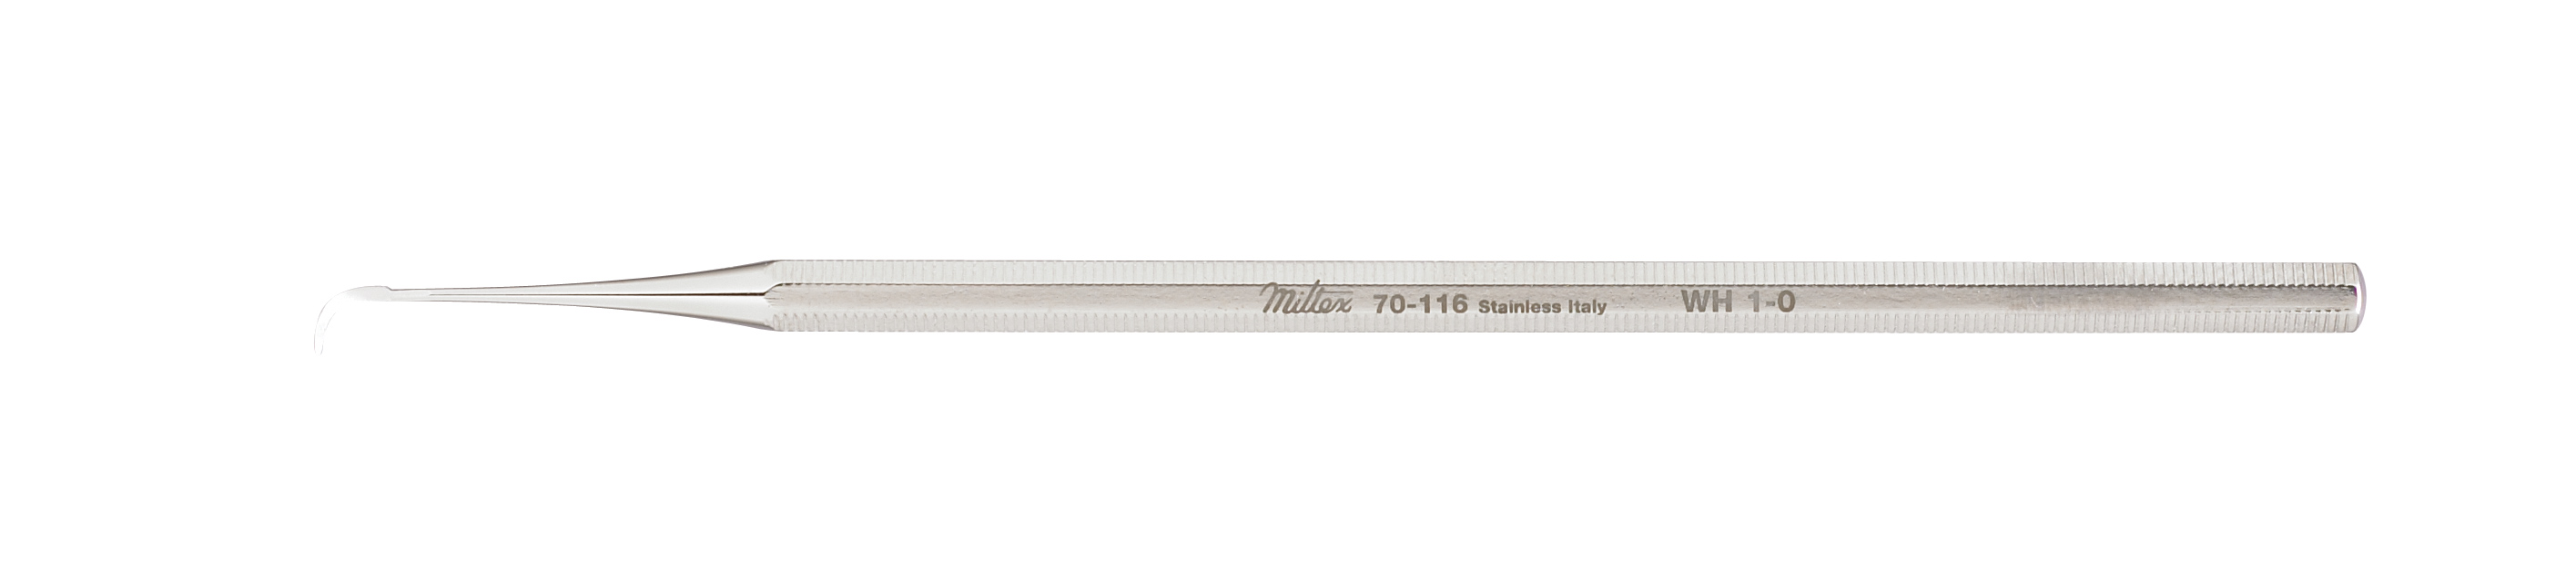 1-0-whiteside-scaler-octagonalsingle-end-serrated-70-116-miltex.jpg